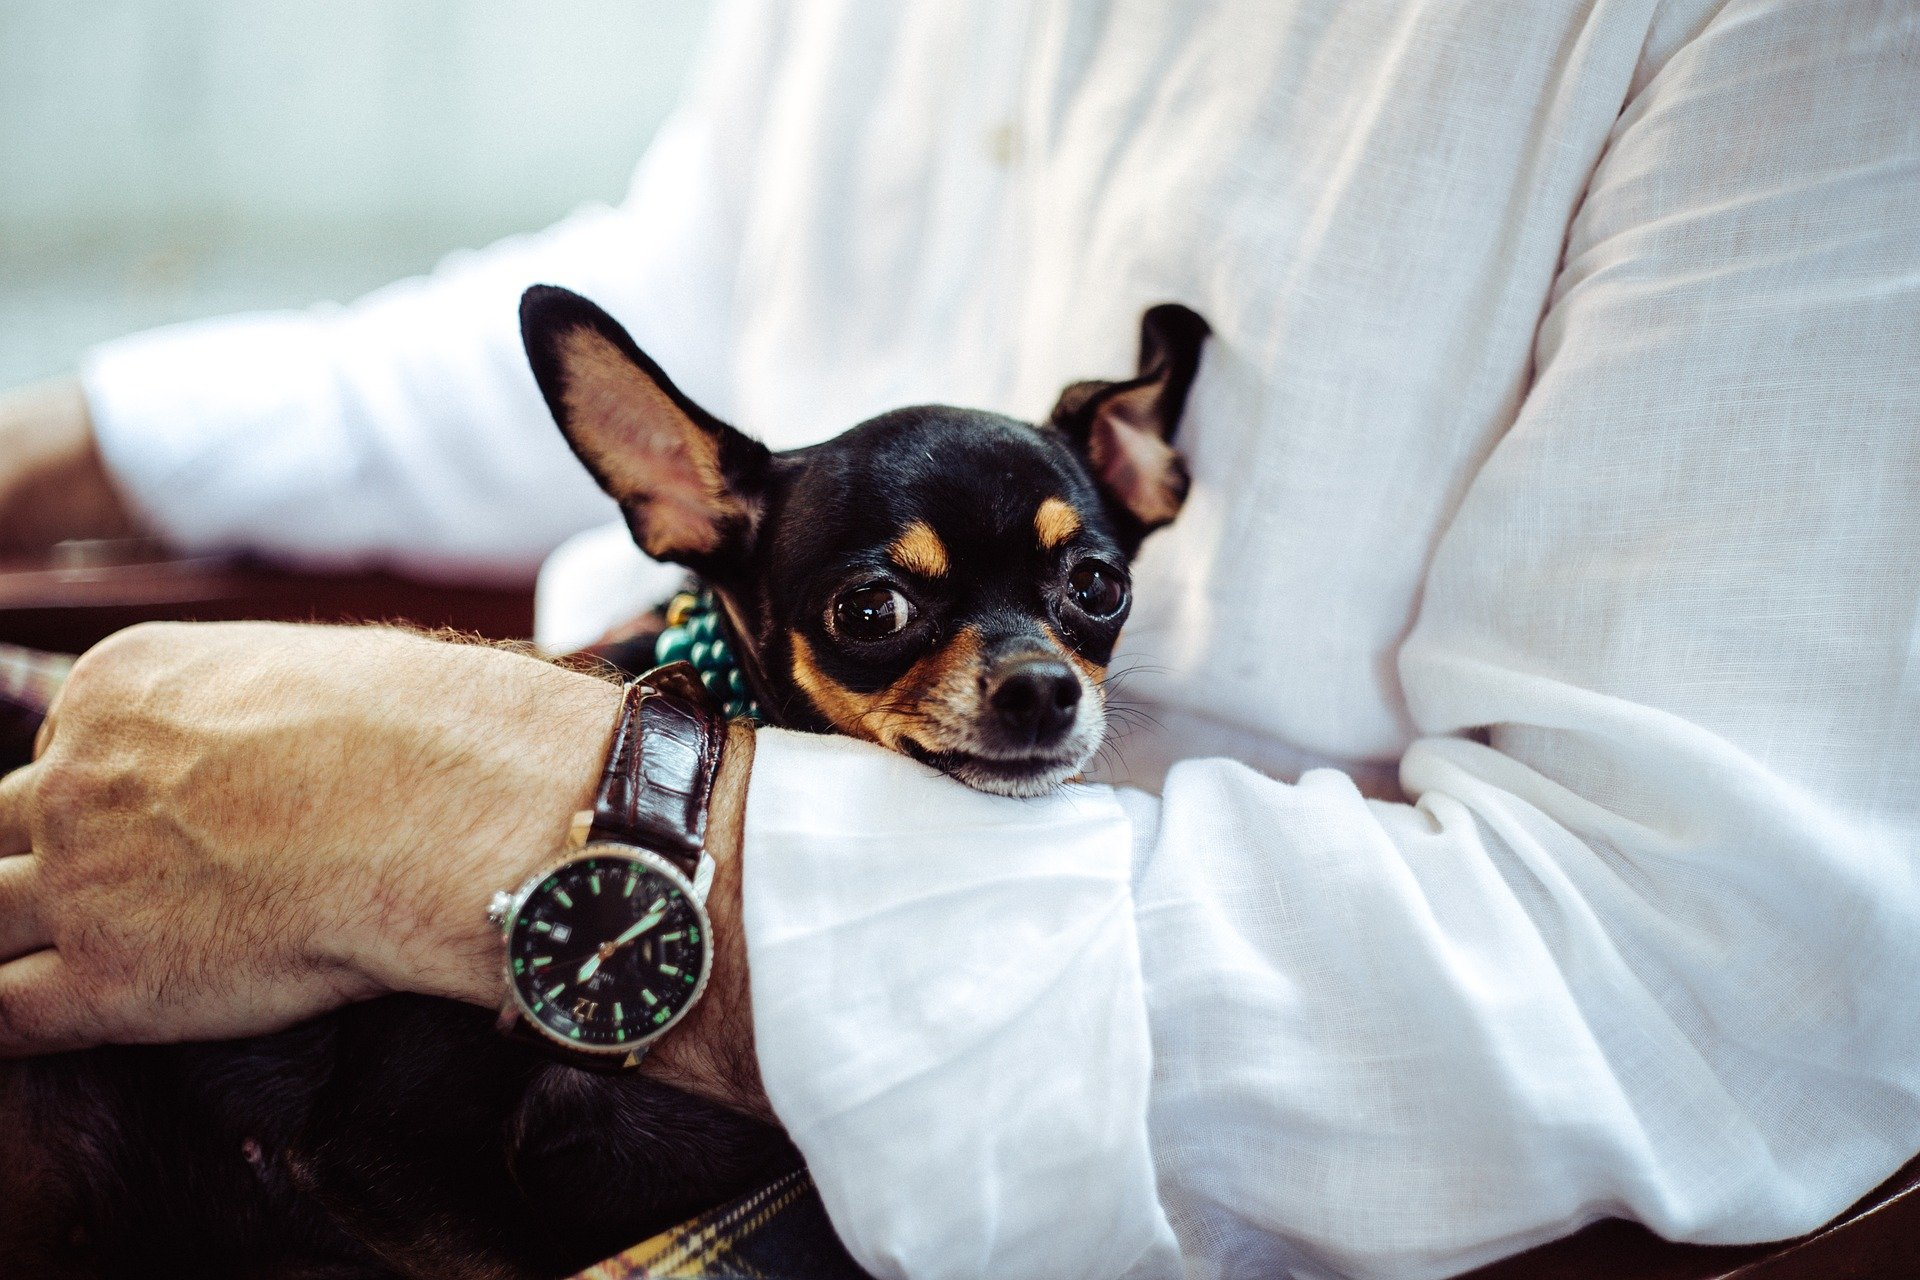 Man sitting down with a chihuahua in his arms. | Source: Pixabay